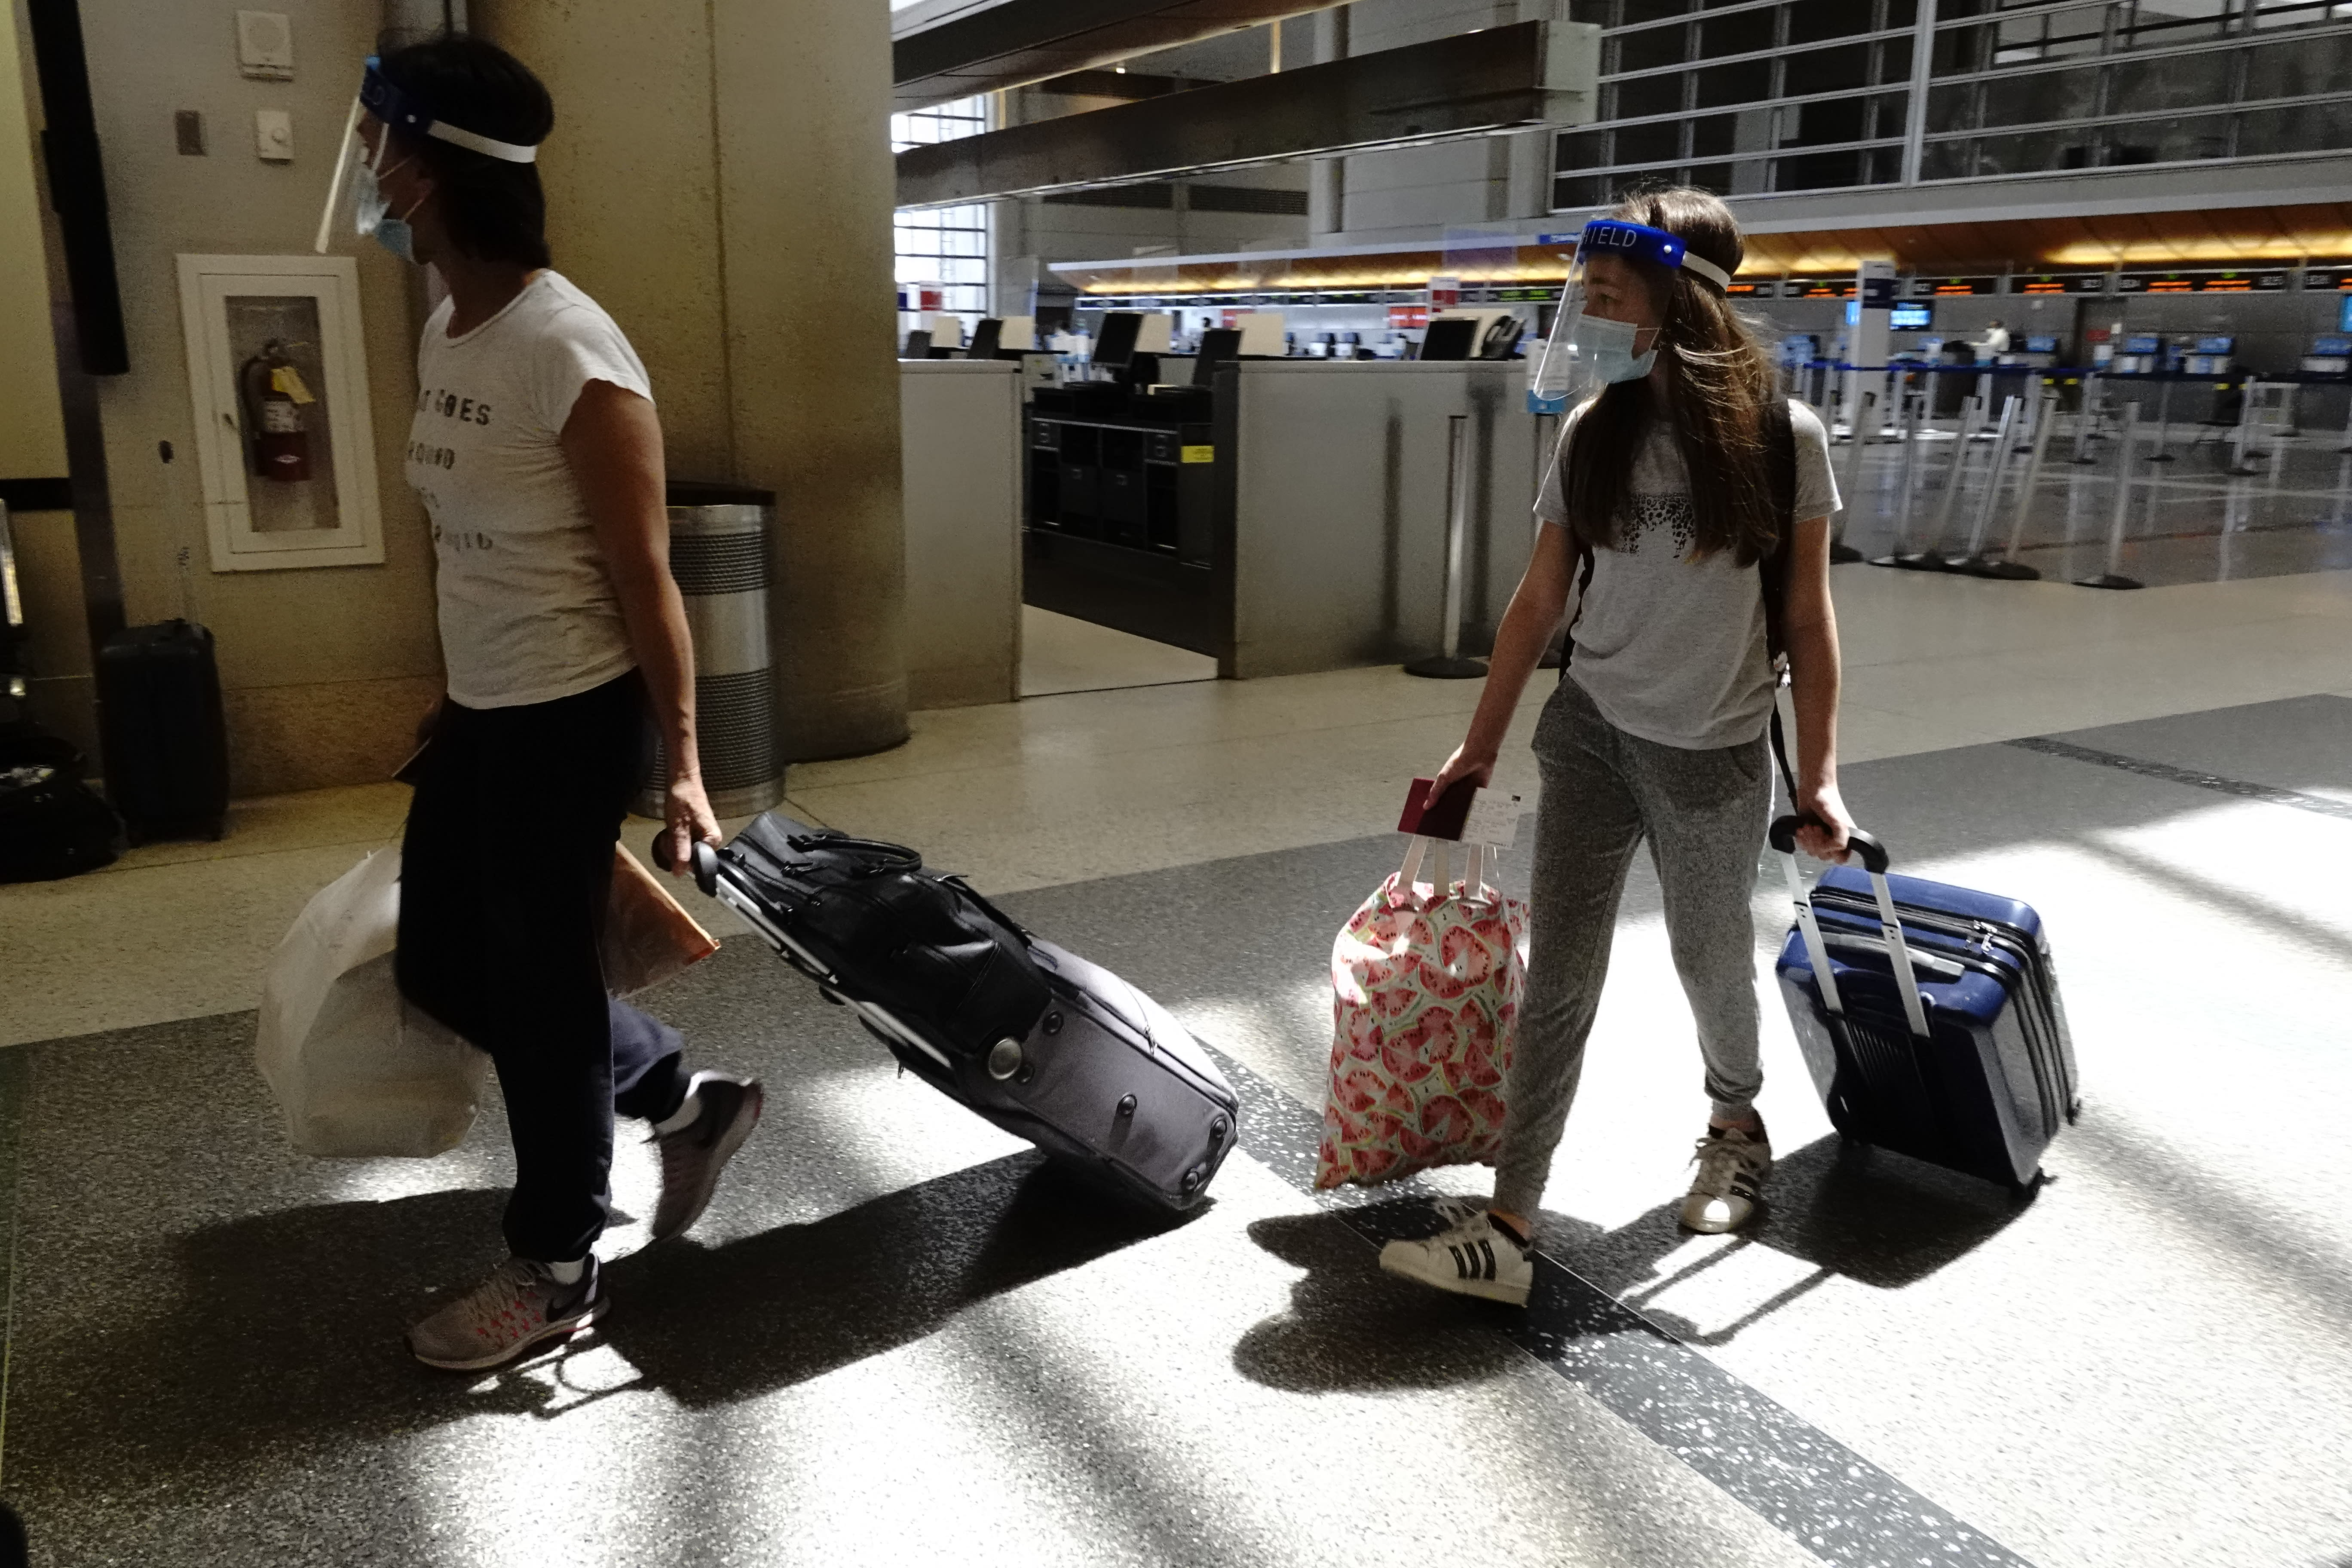 Labor Day weekend air travel hits nearly 6-month high, but holiday caps dismal summer season